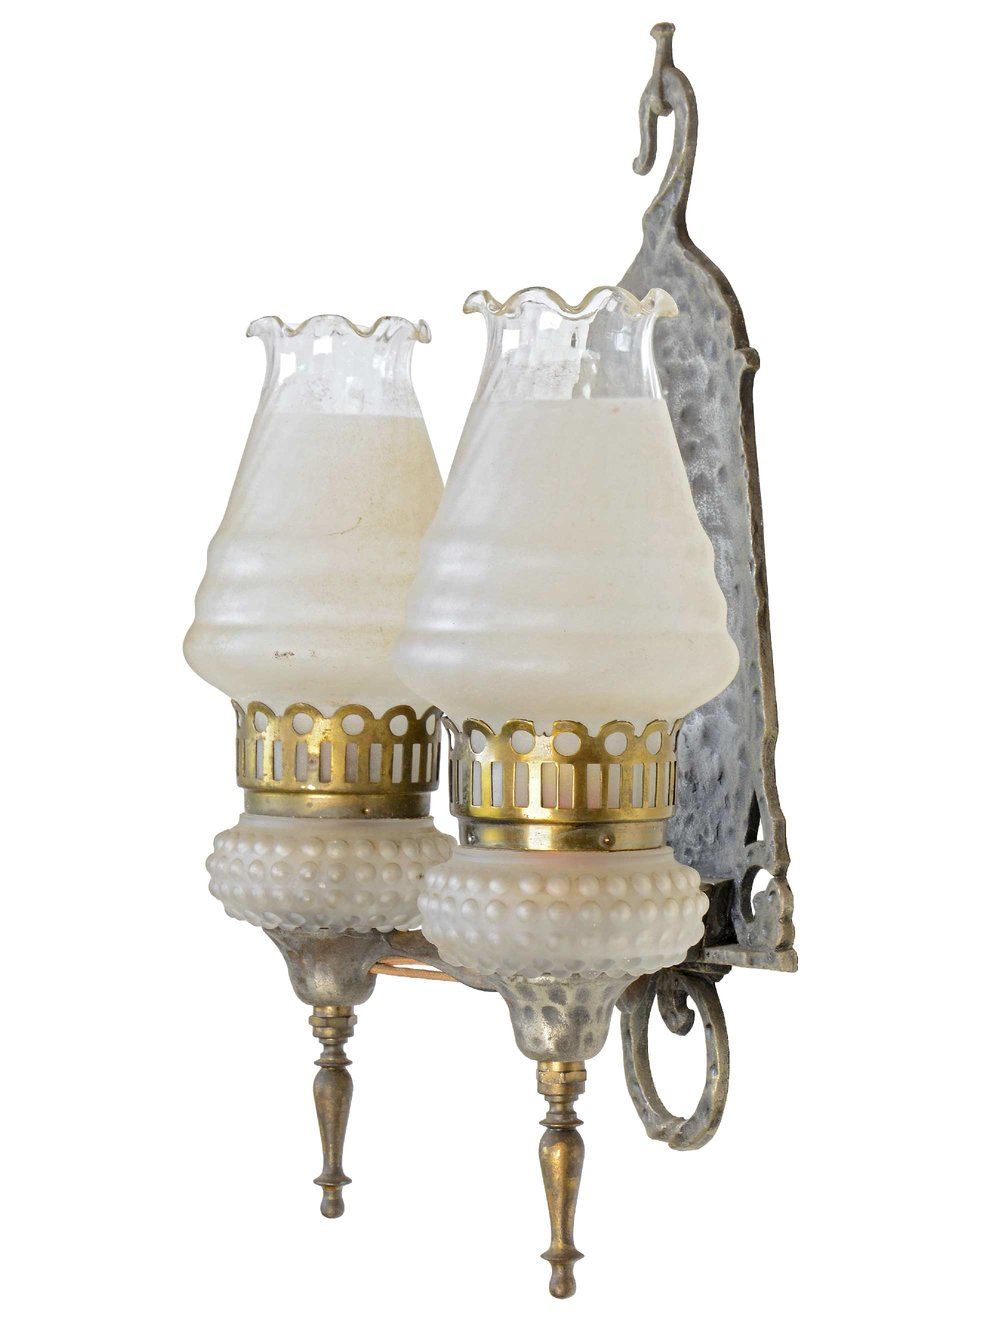 46795-virden-2-arm-tudor-sconce-with-shades-side.jpg